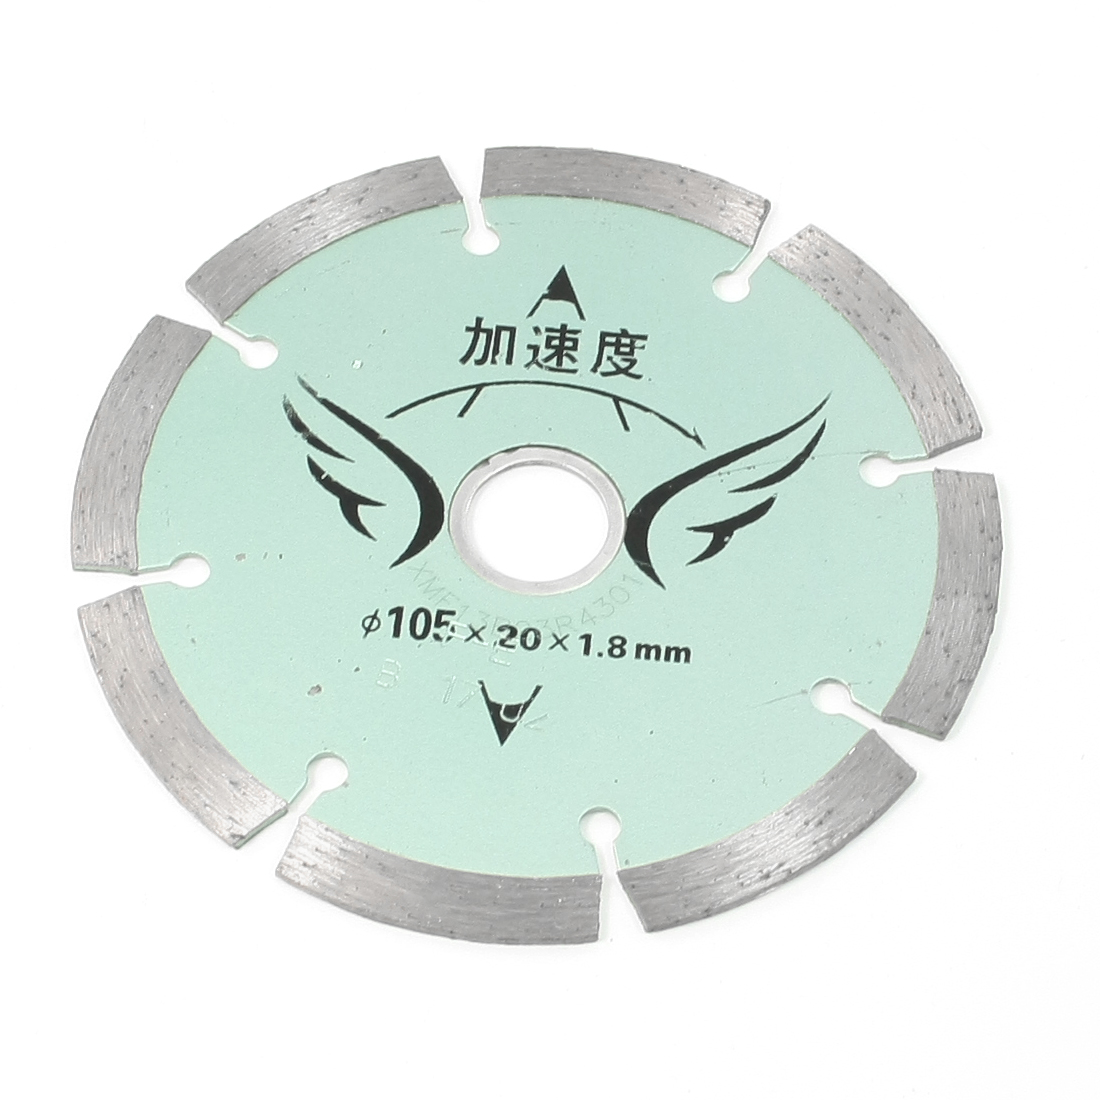 Concrete Tile Cutting Wheel 8-Segment Metal Disc Flake105mm x 20mm x 1.8mm